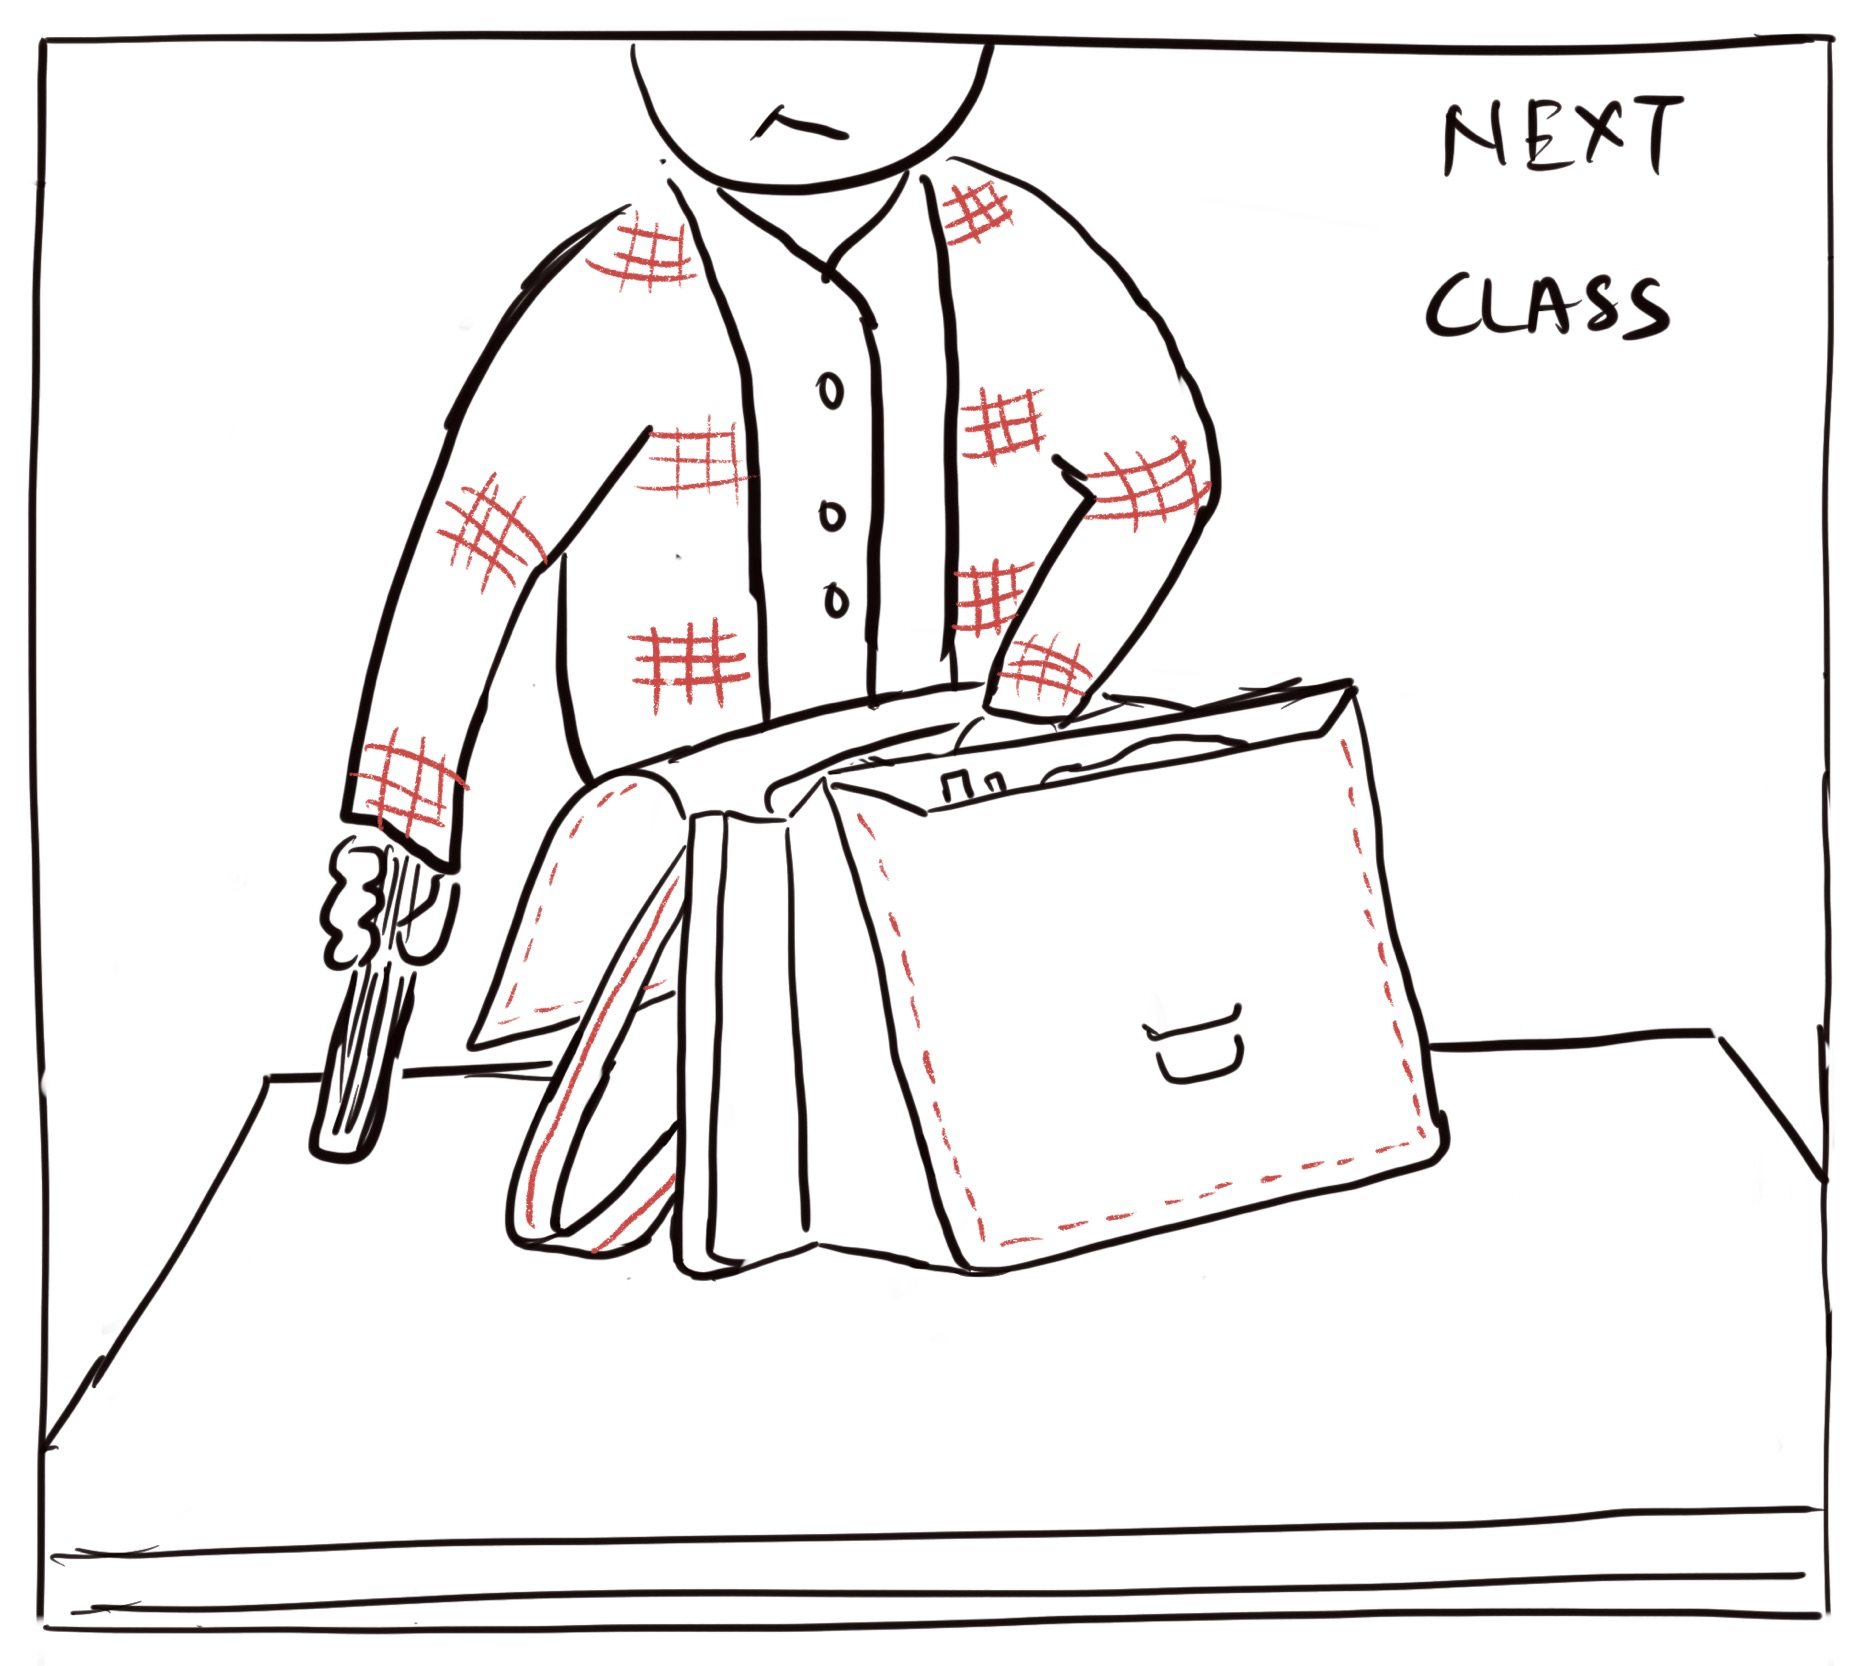 In this image, Alan is unpacking his bag to get ready for the next class.